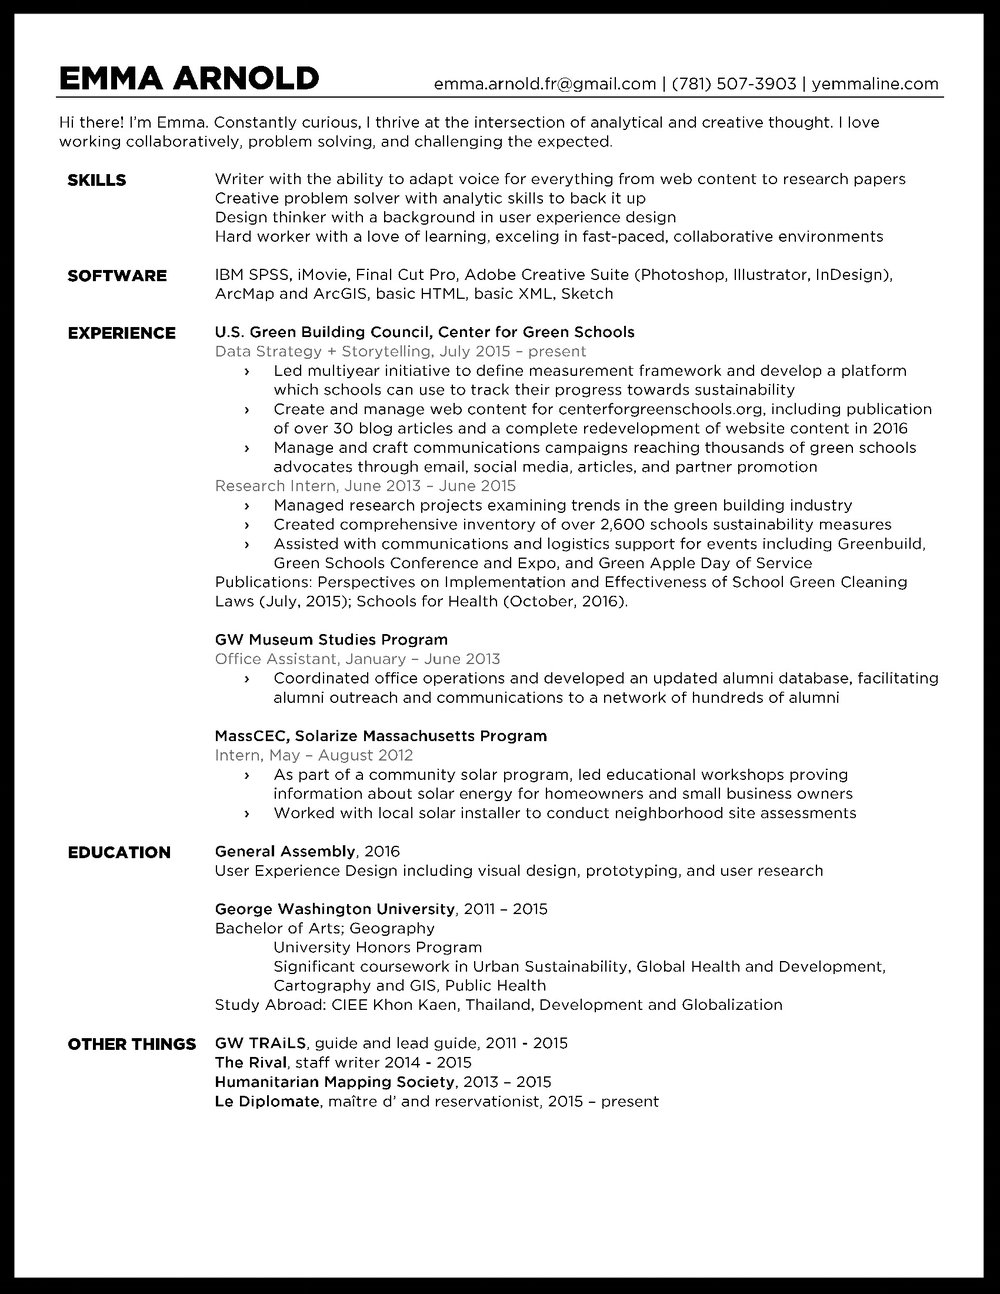 Resume, current as of January, 2017